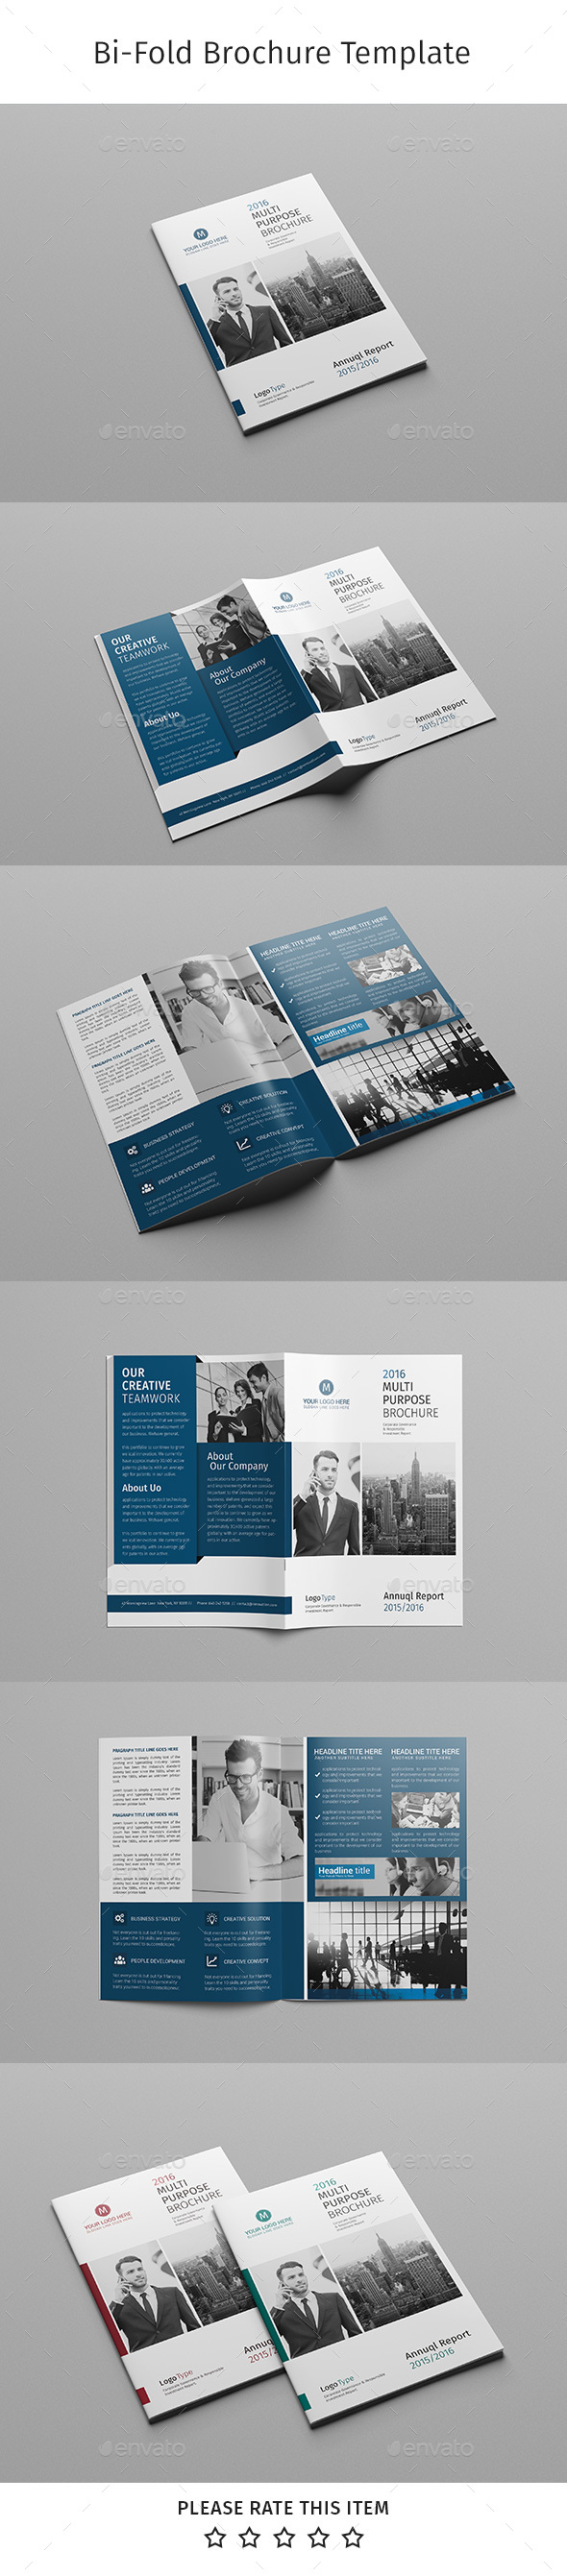 Corporate Bi-fold Brochure-Multipurpose 06 - Corporate Brochures